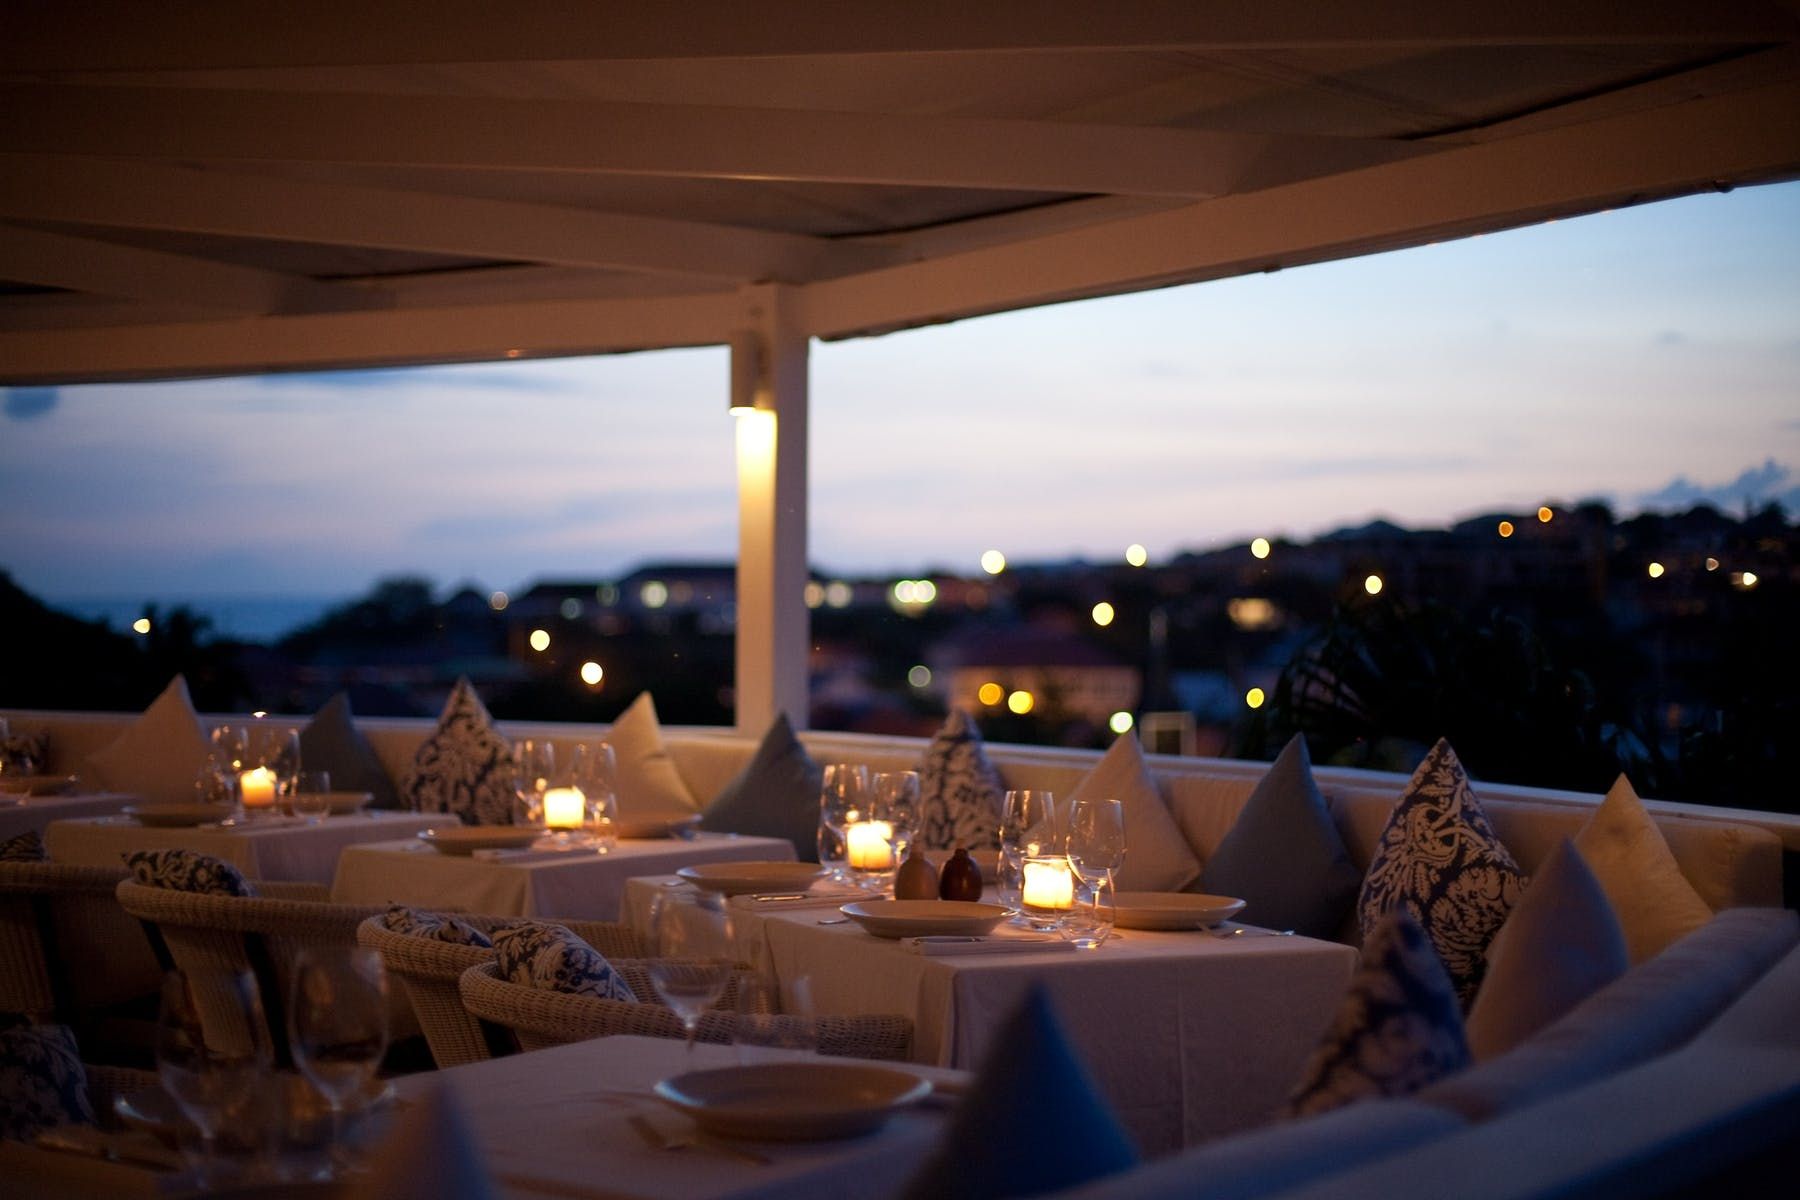 a terrace at night filled with tables and chairs